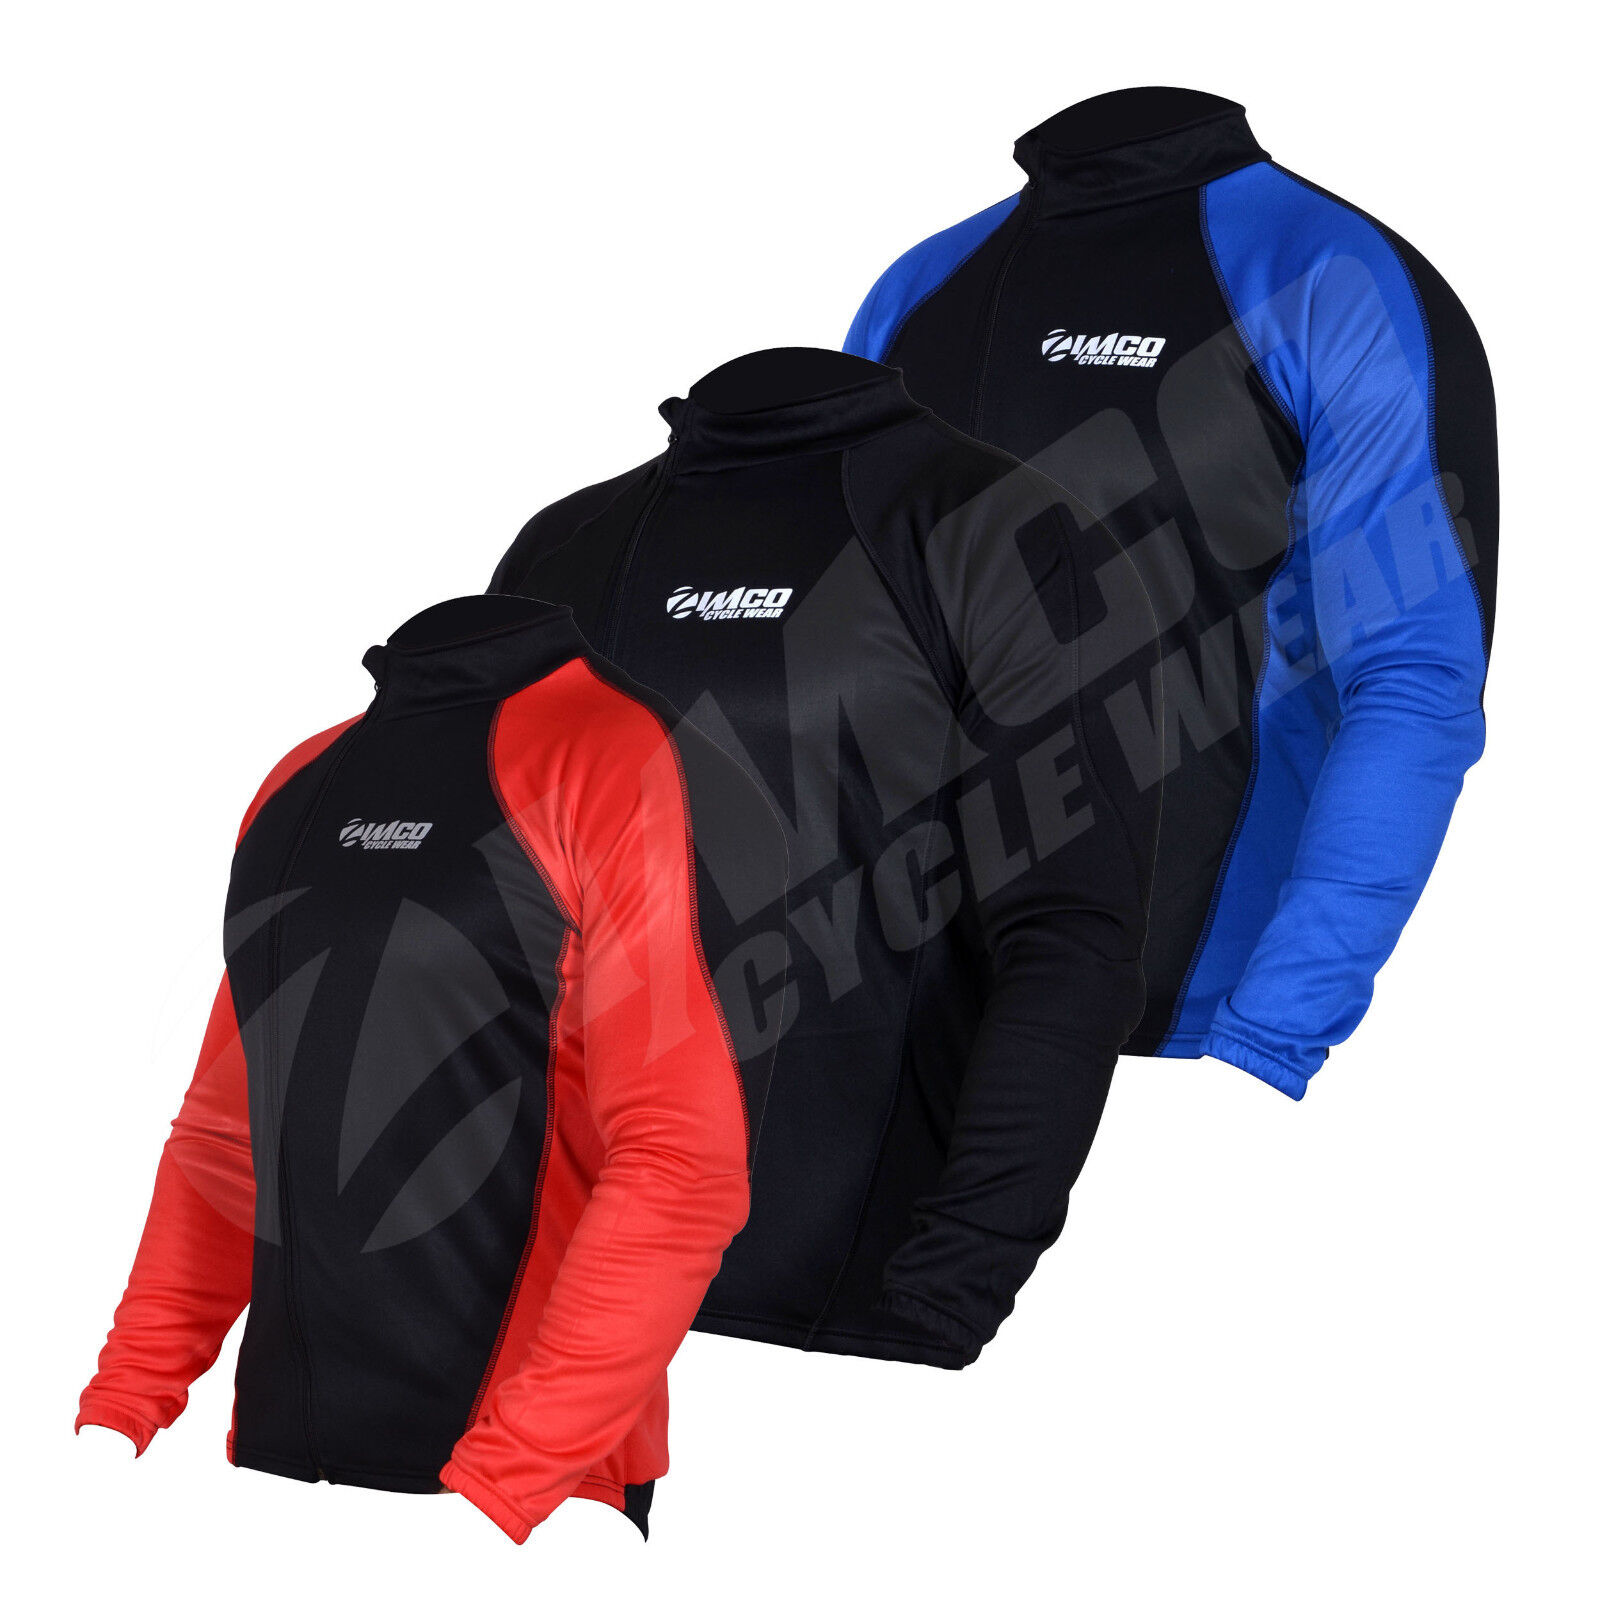 50f0ae577 Details about Zimco Winter Cycling Thermal Jacket Fleece Long Sleeve  Mountain Bike Jersey 1157